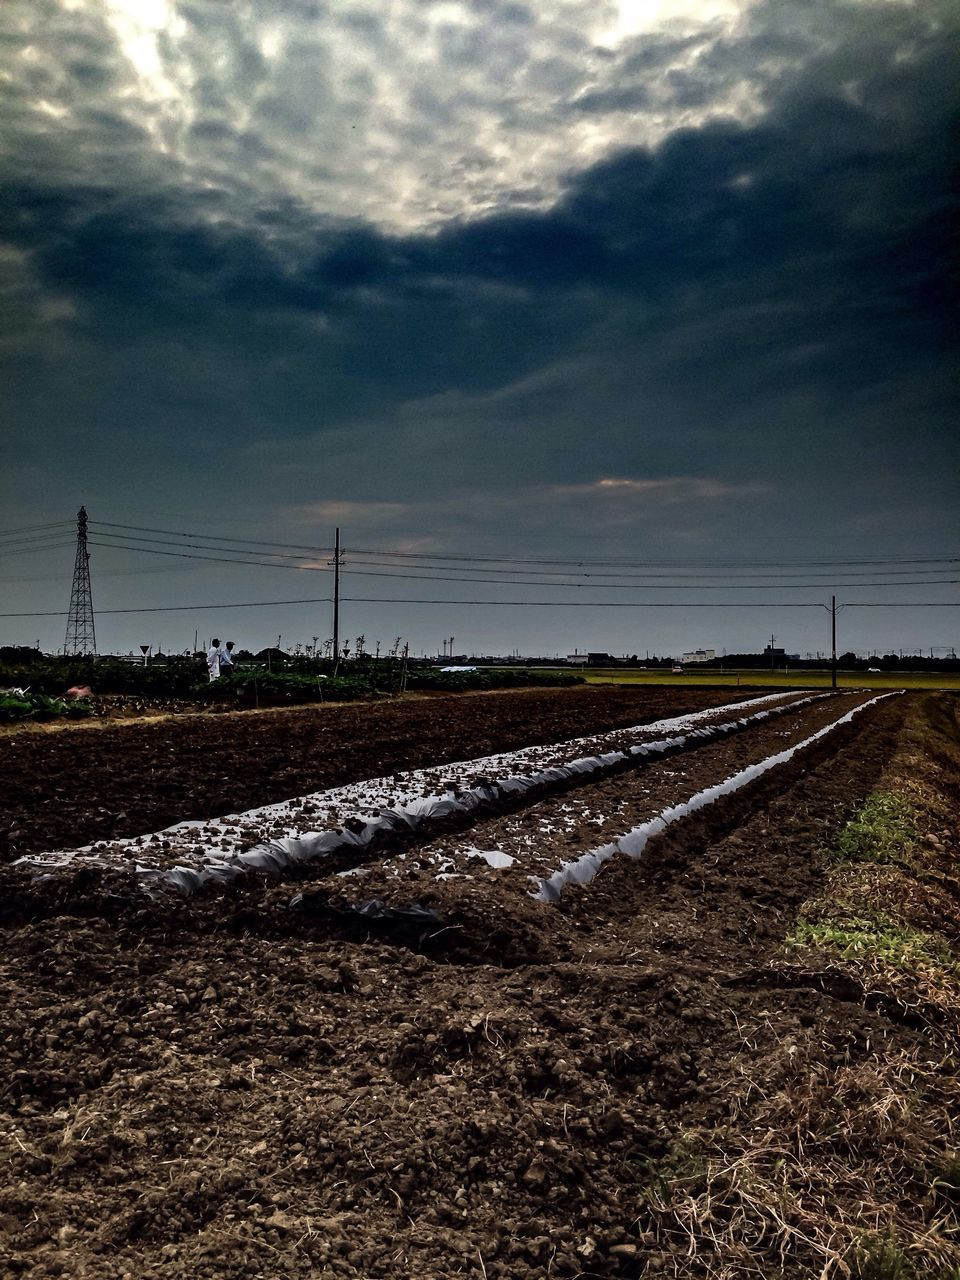 sky, cloud - sky, landscape, agriculture, field, nature, rural scene, no people, day, tranquility, tranquil scene, scenics, outdoors, plough, beauty in nature, plowed field, electricity pylon